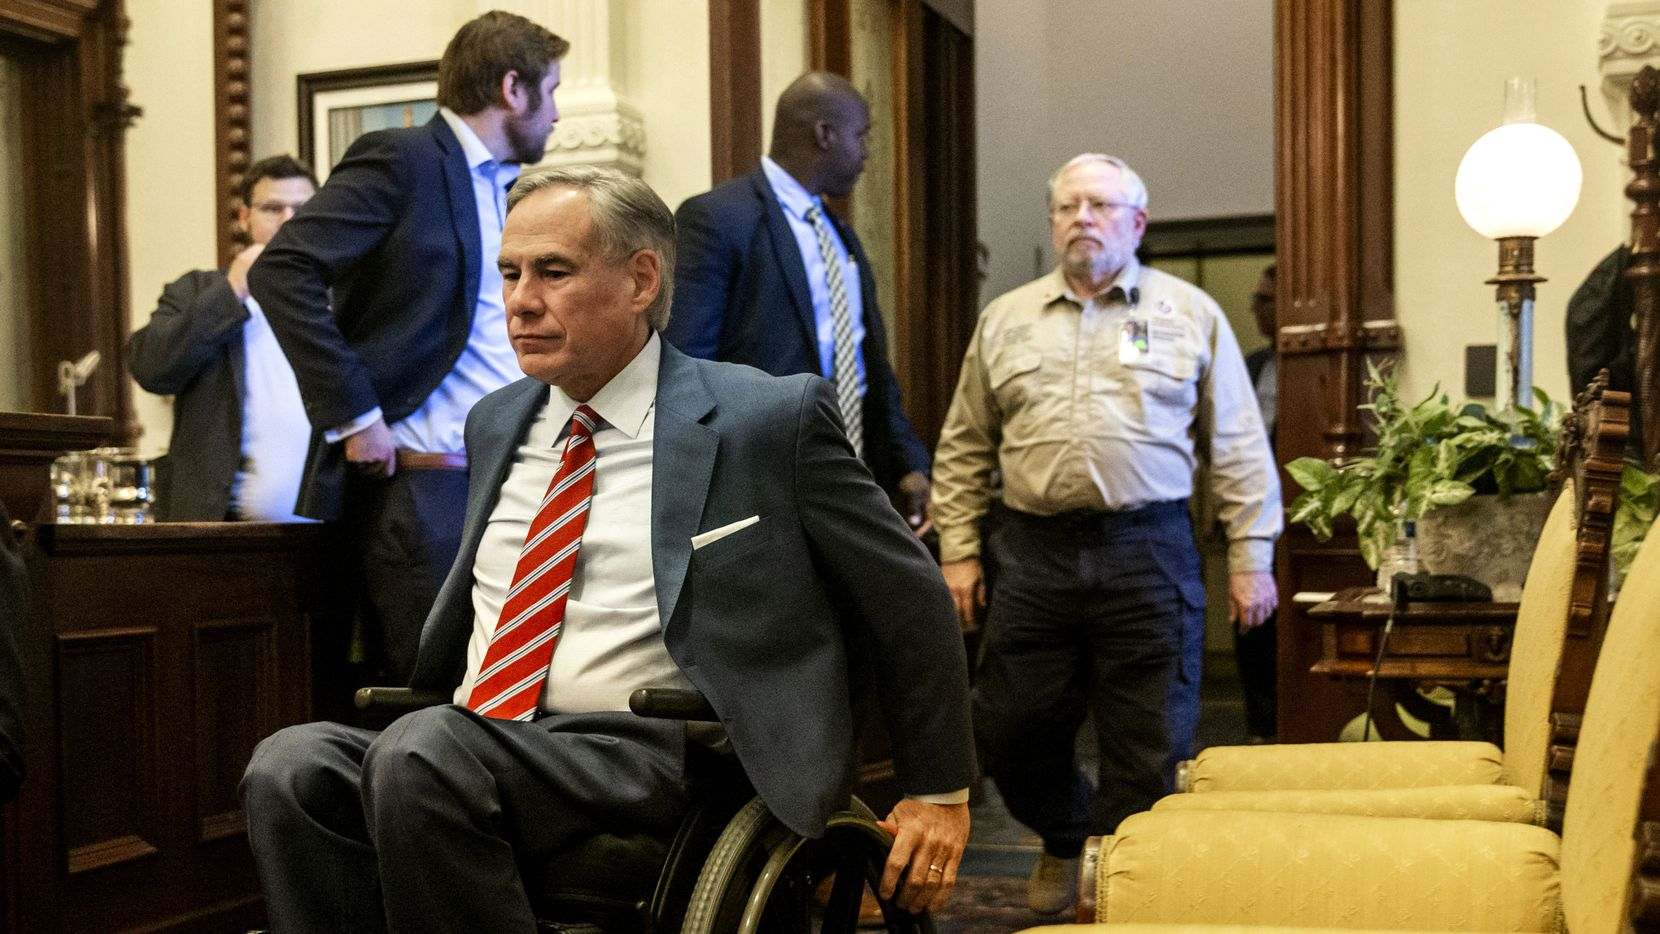 Gov. Greg Abbott, shown entering a May 18 press conference, is using his broad popularity among Republican voters and potent campaign organization to try to propel three state or county-level candidates past rivals associated with Empower Texans in the July 14 runoffs.